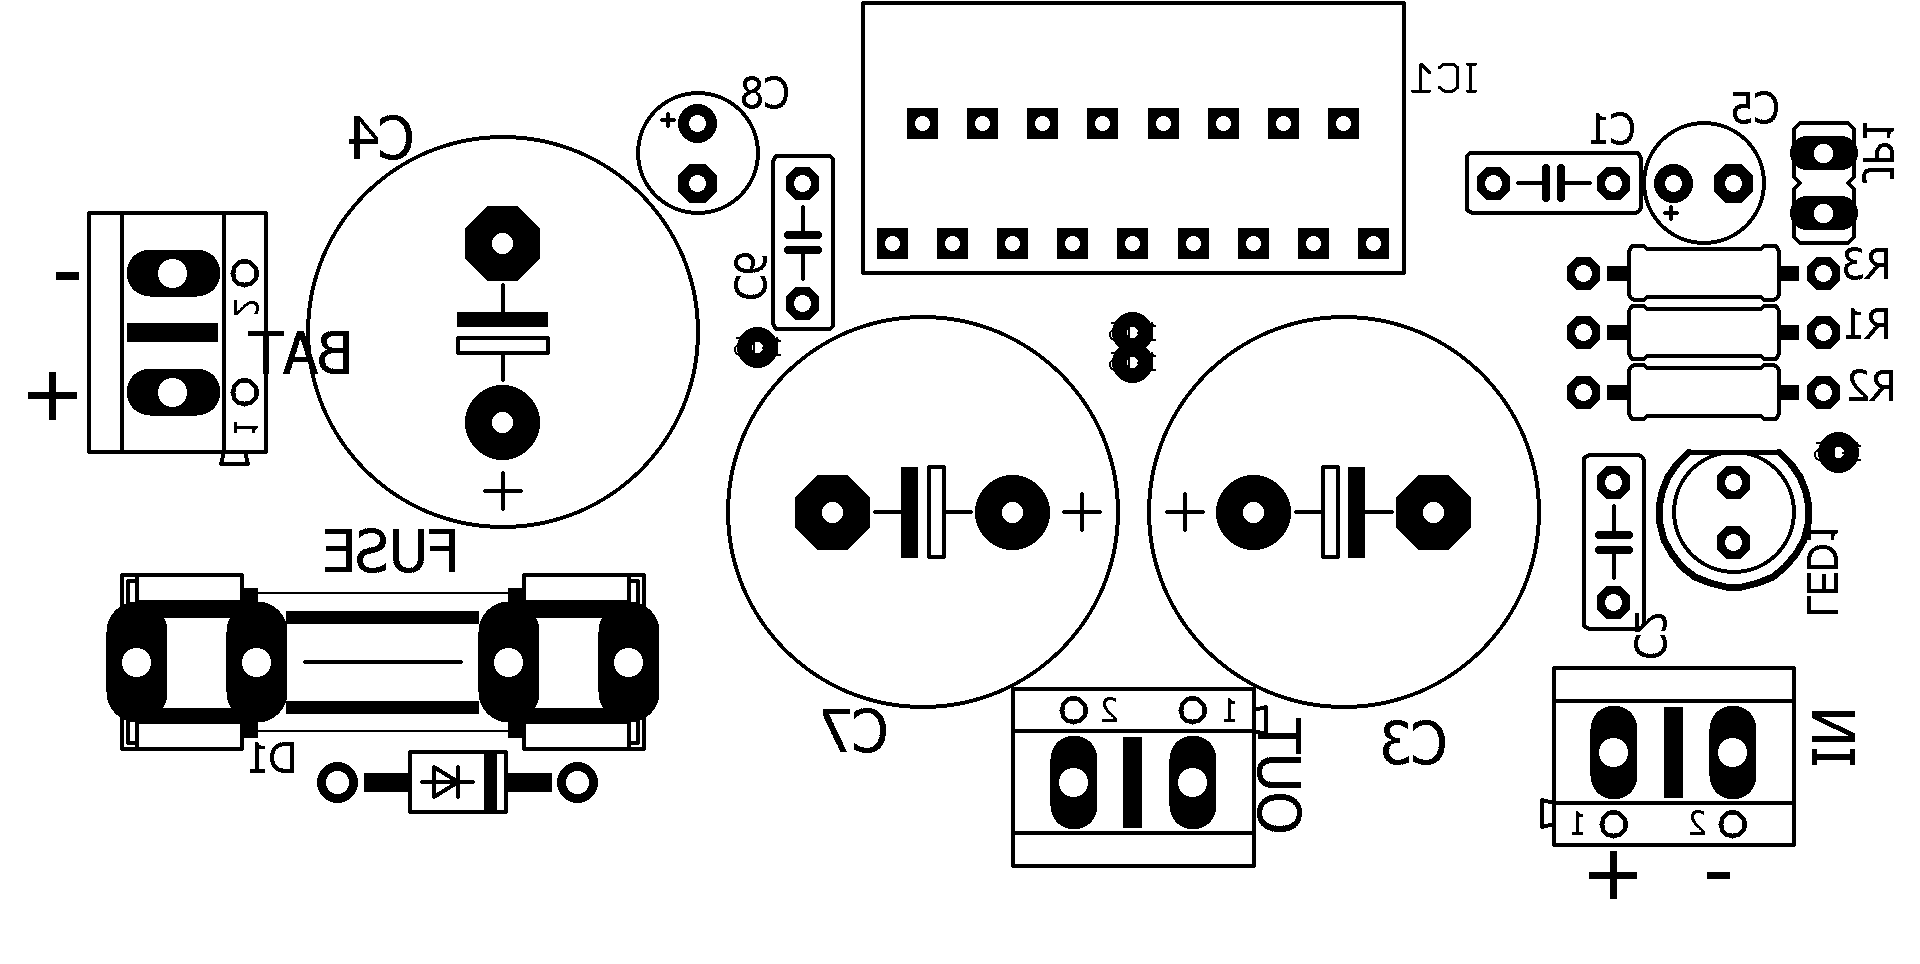 Tda Amplifier Audio Silk Suggested Printed Circuit Board For Mounting Circuit Audio